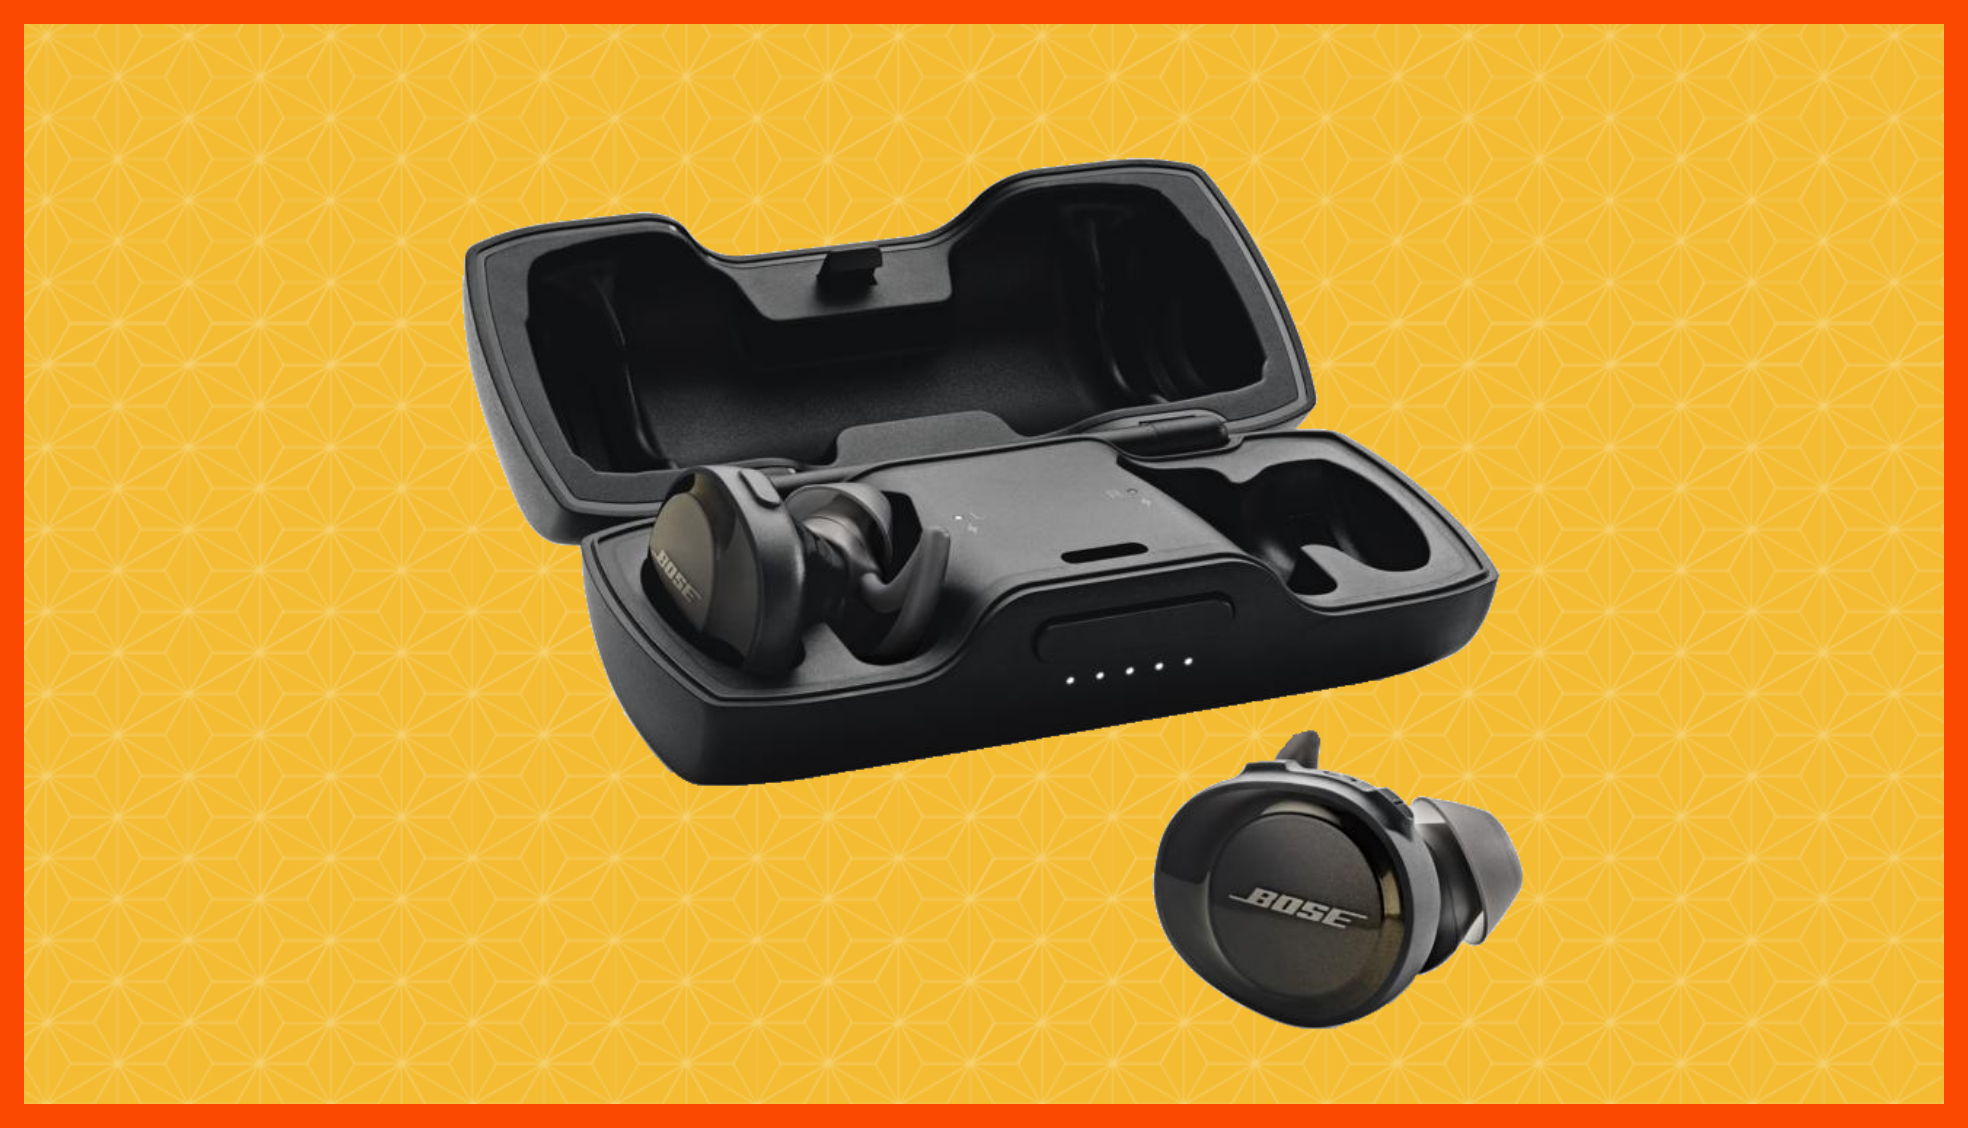 Hurry, these stellar Bose wireless earbuds are on sale for their lowest price ever: 'Sound is incredible'